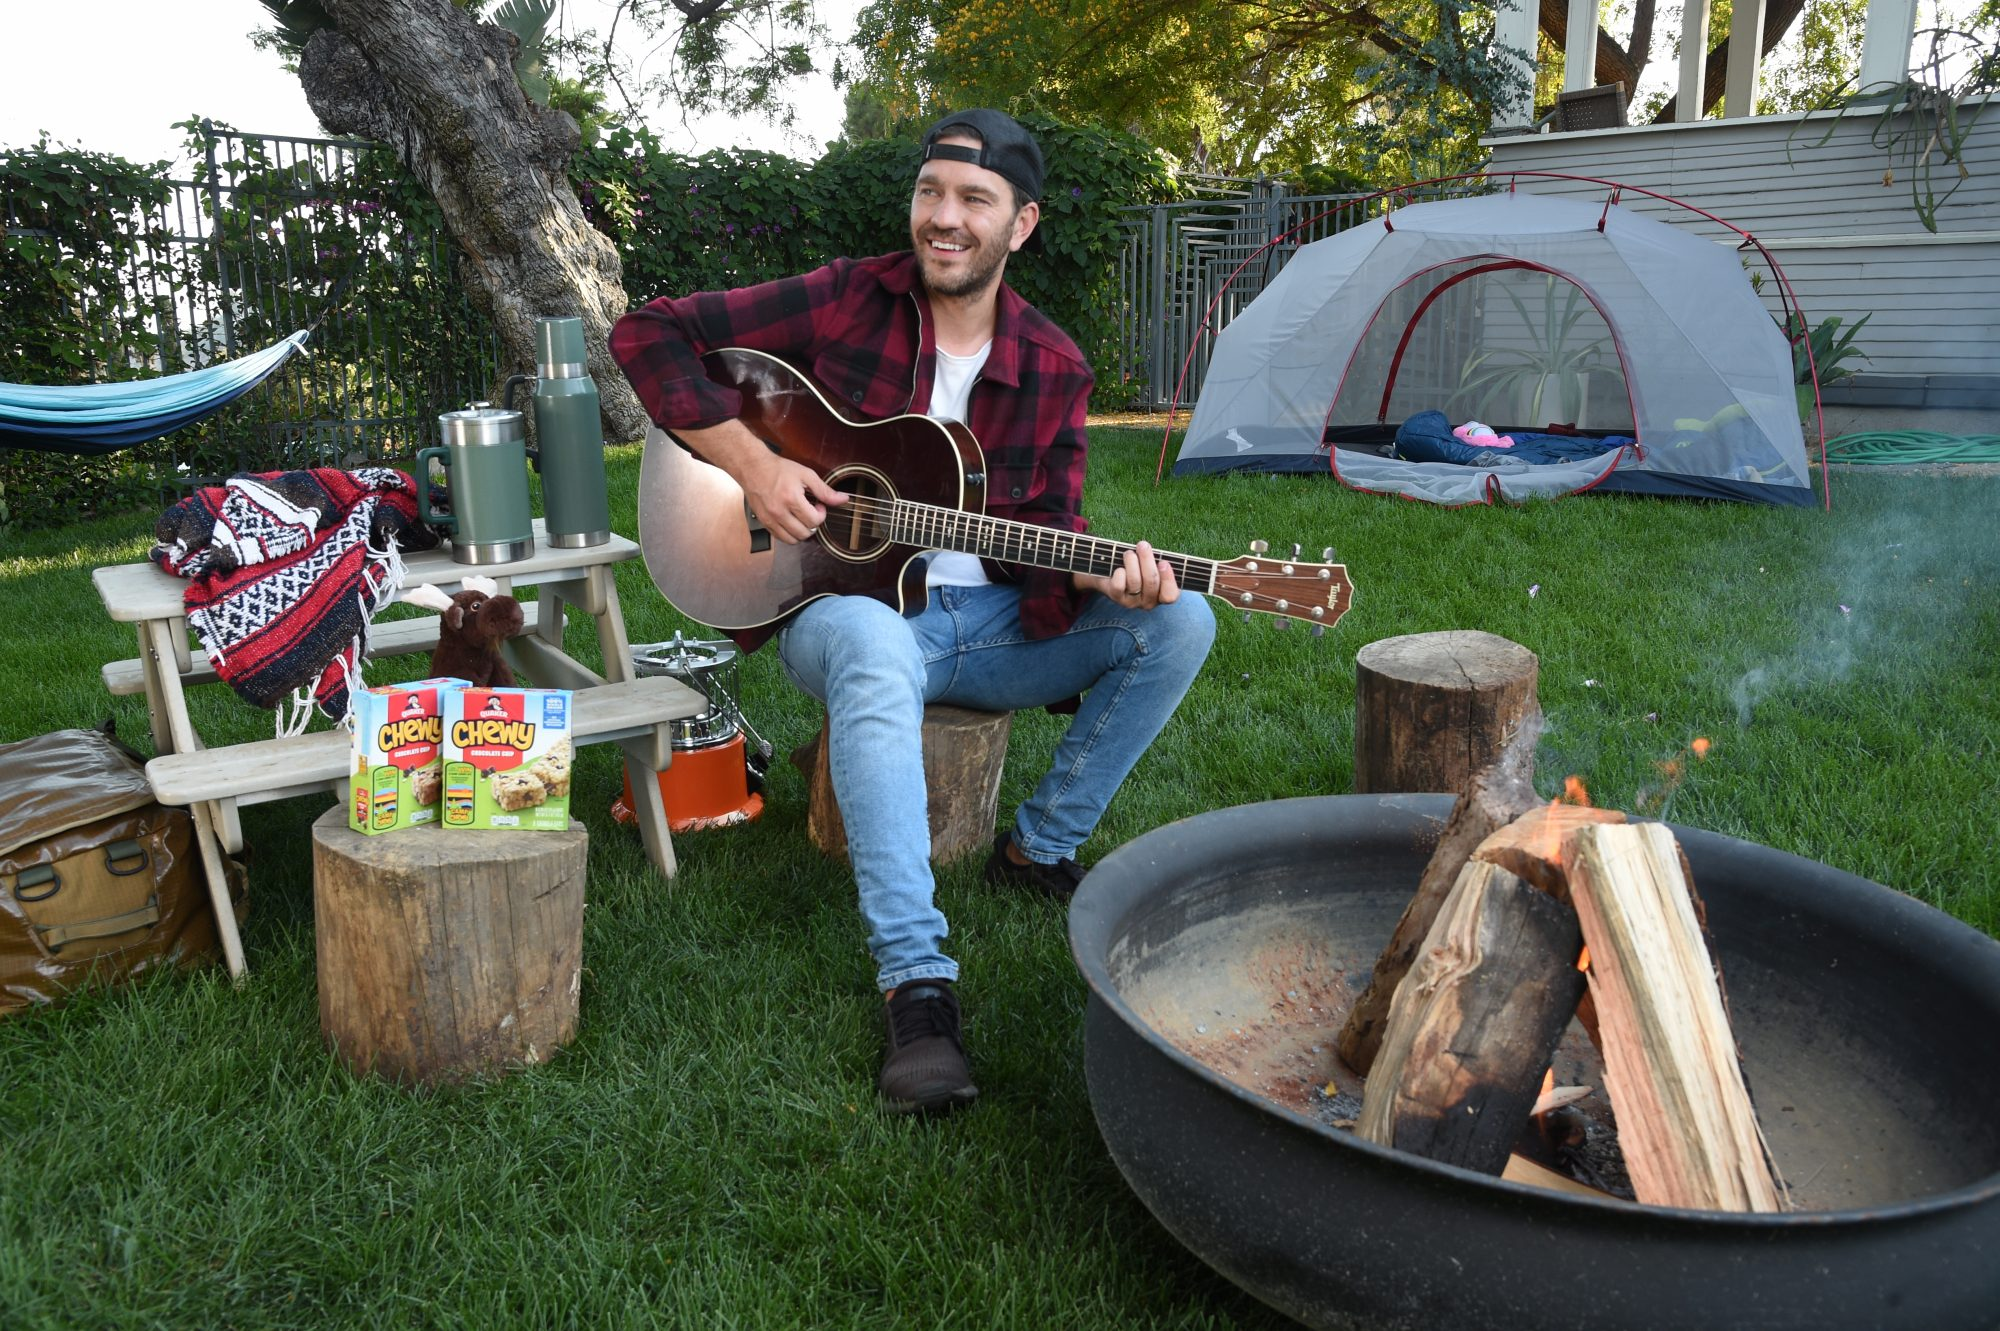 Andy Grammer for Quaker`s Camp Chewy